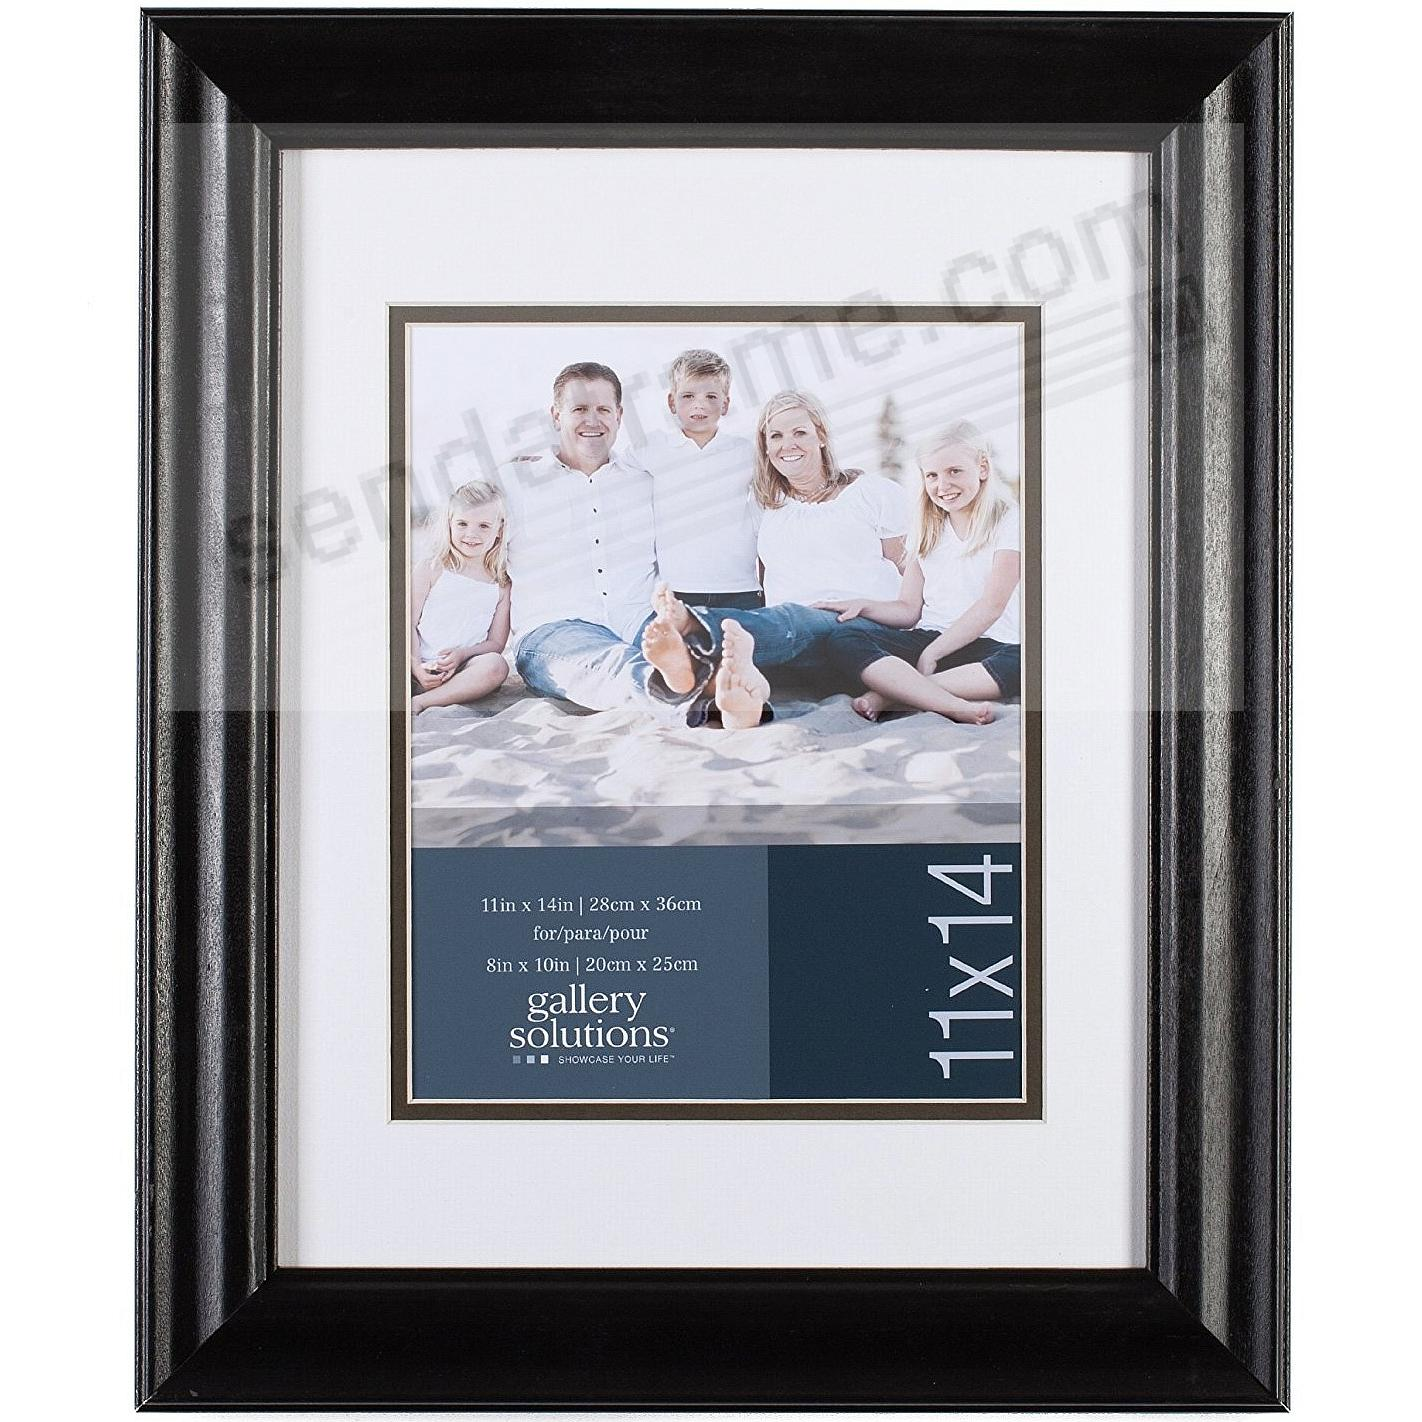 SATIN BLACK 11x14/8x10 frame by Gallery Solutions®